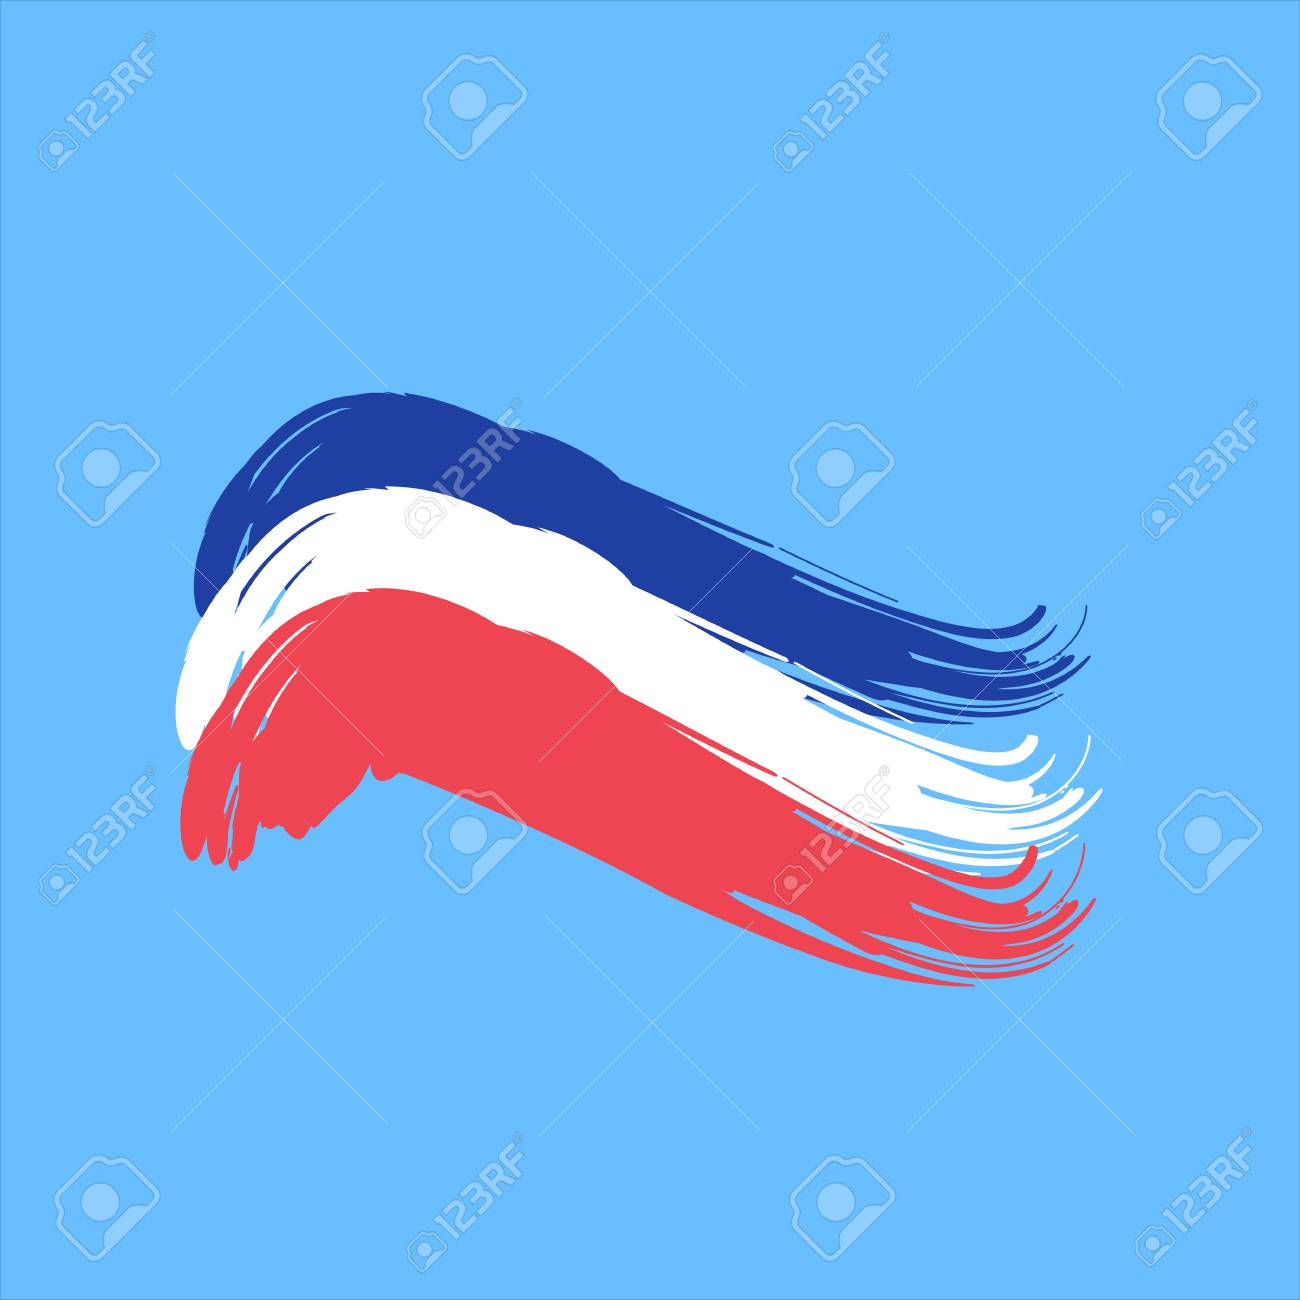 brushstroke flag france (french). royalty free cliparts, vectors